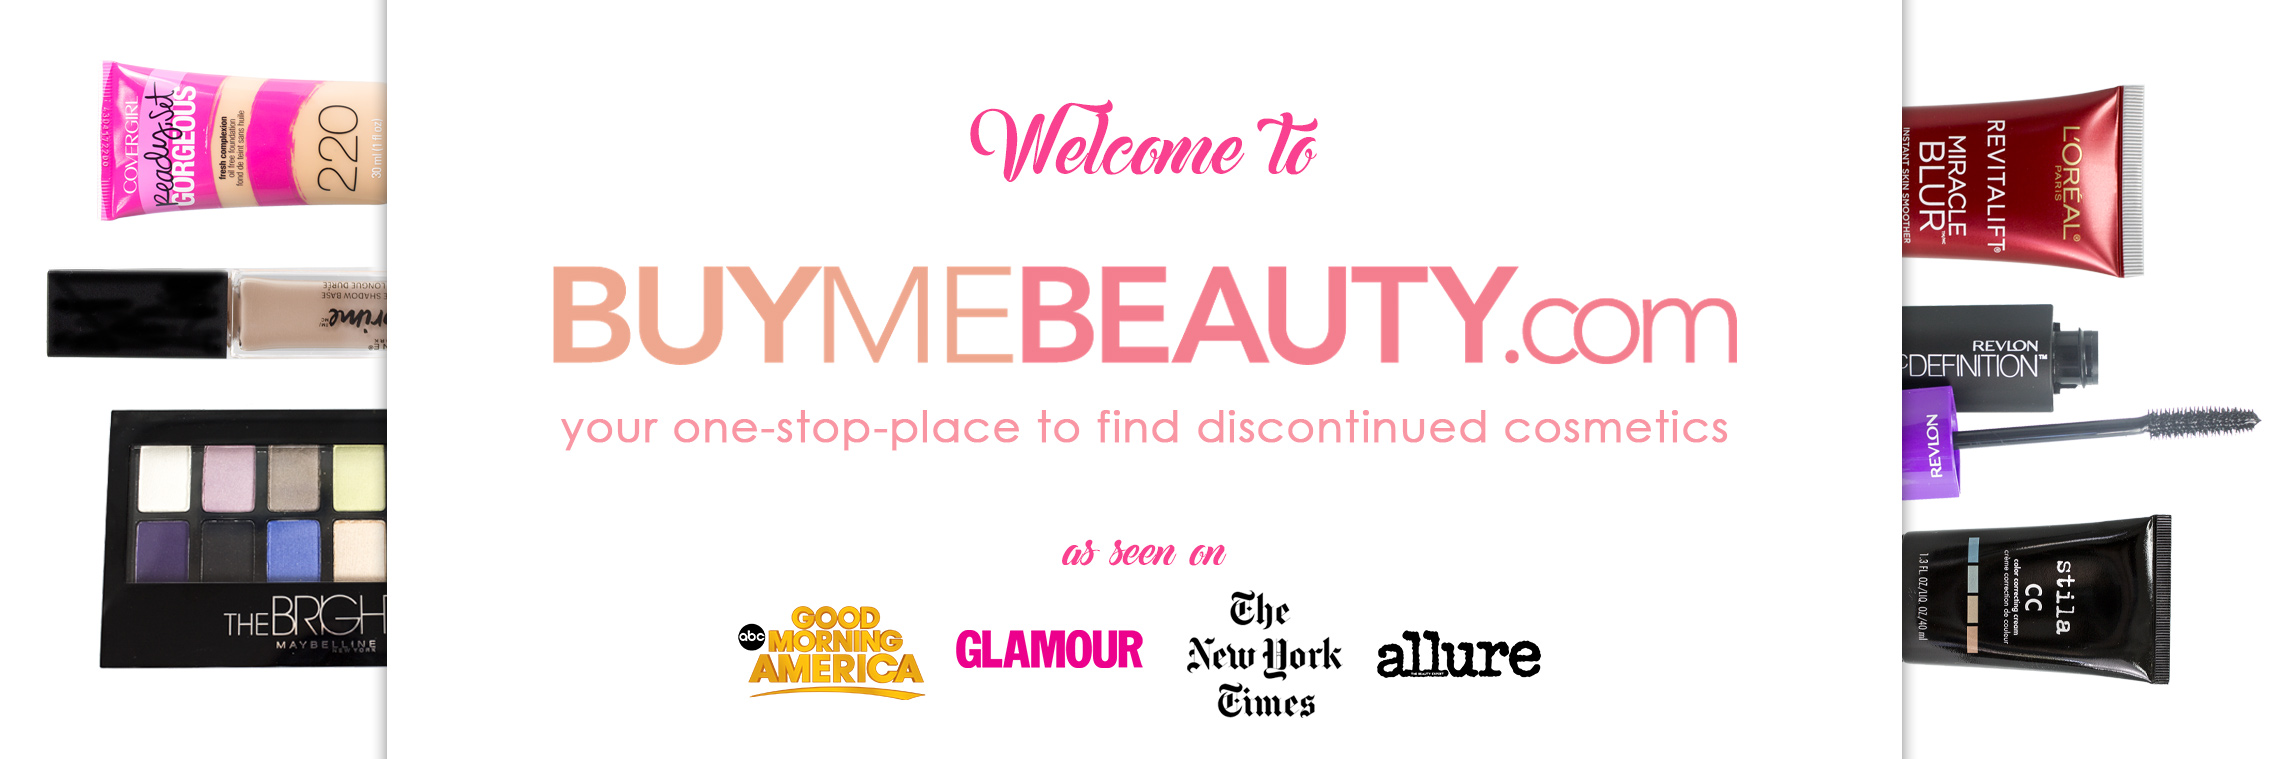 welcome-to-buymebeauty